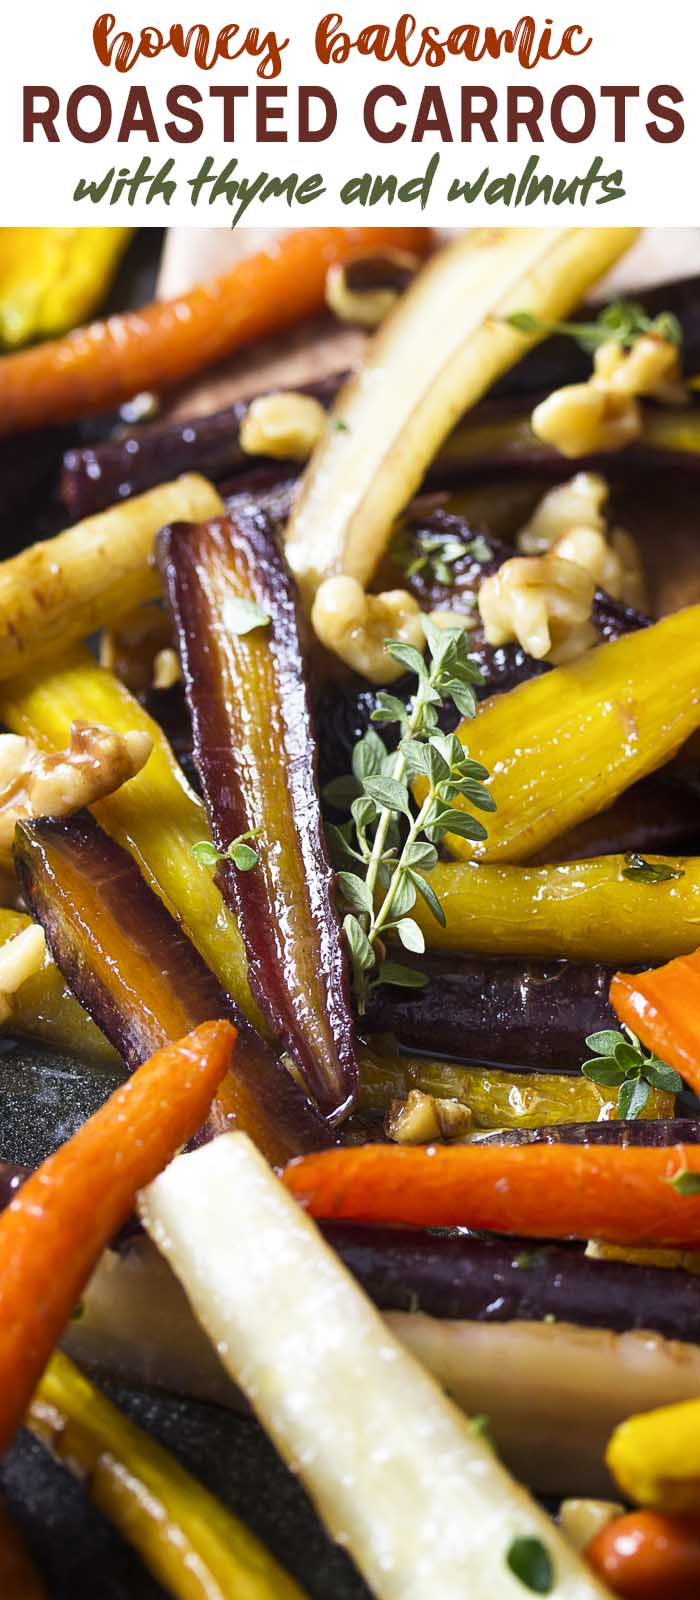 Close up of carrots and thyme in the roasting pan with text overlay - Roasted Carrots.